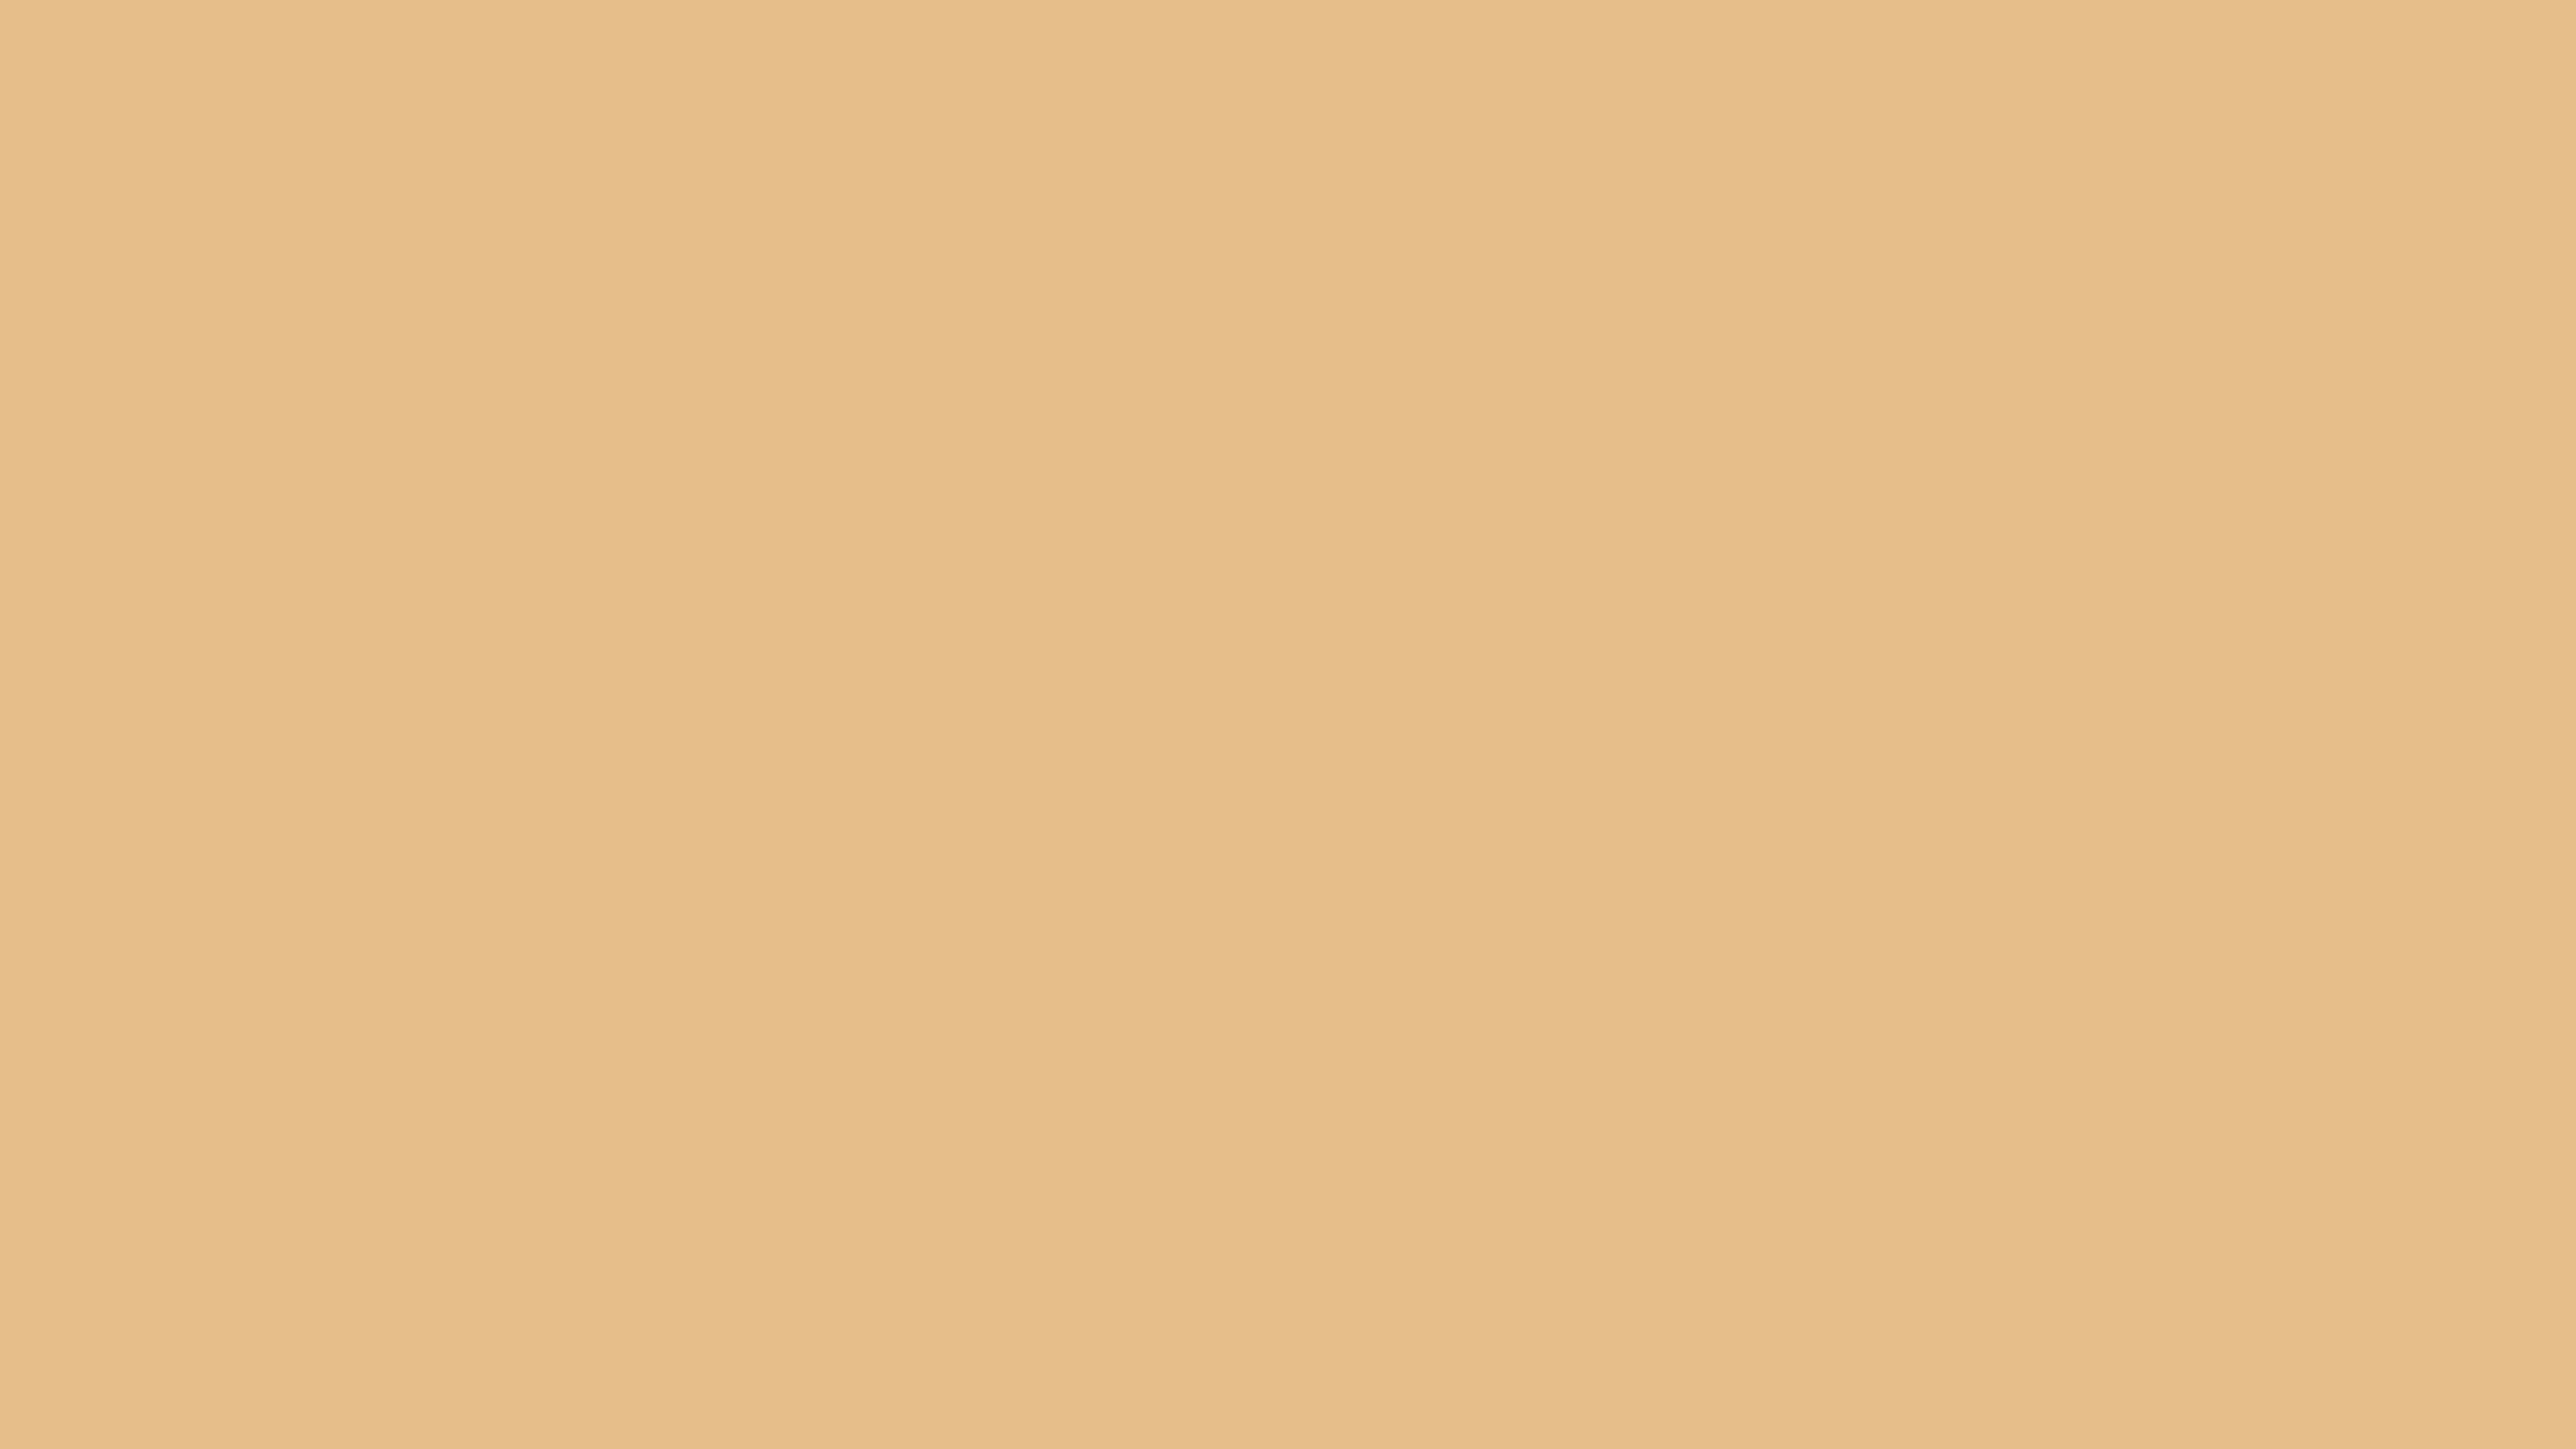 Pale Gold Solid Color Background Wallpaper 5120x2880